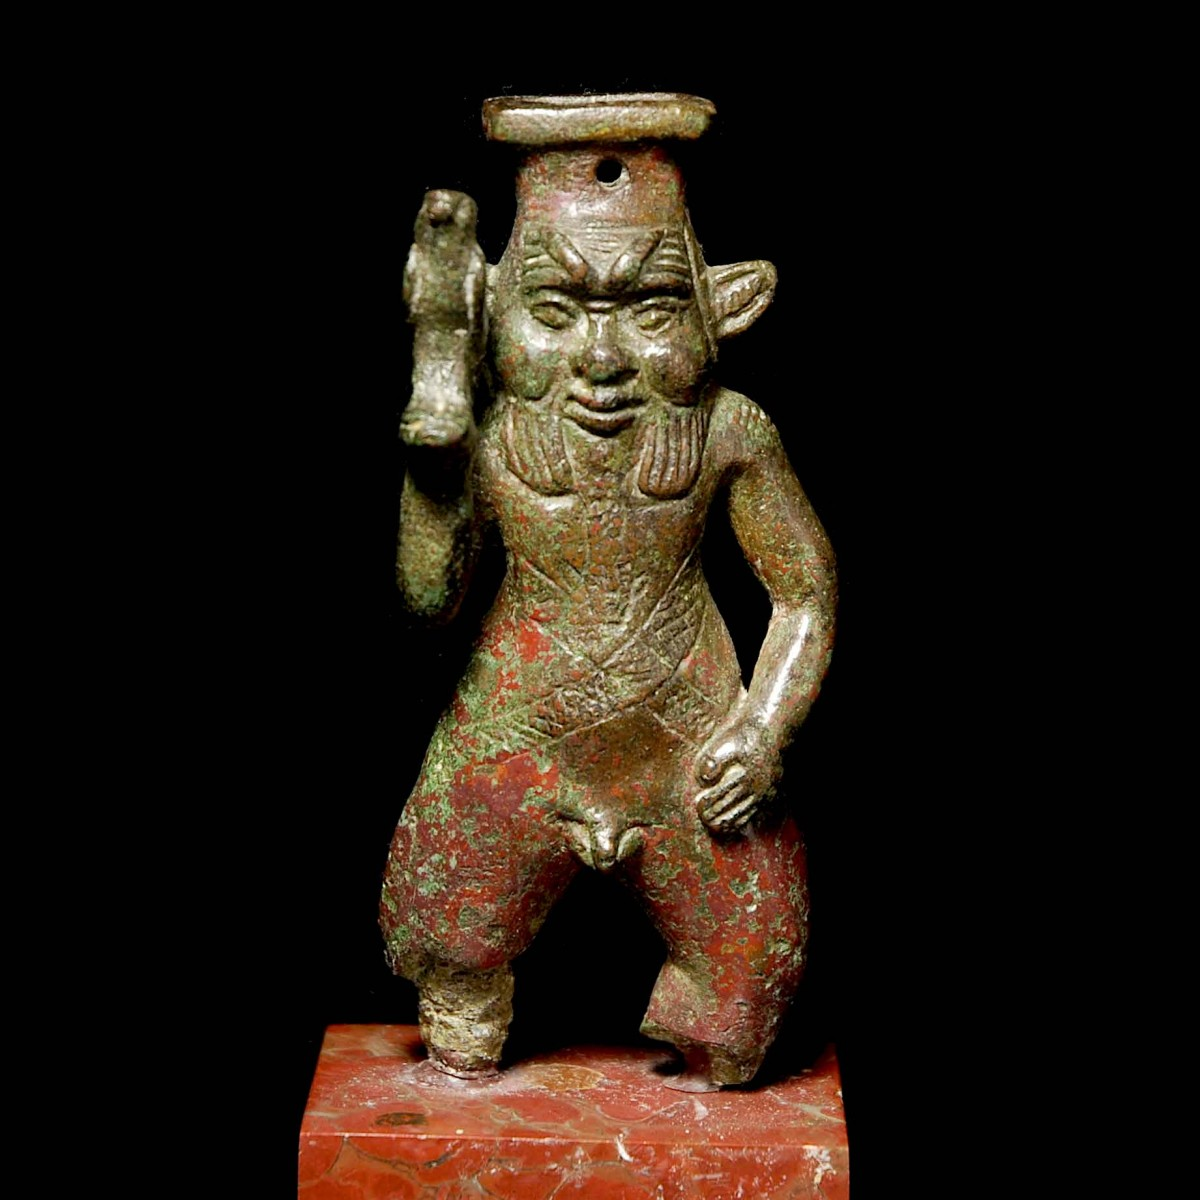 Egyptian Bronze statuette of Bes front